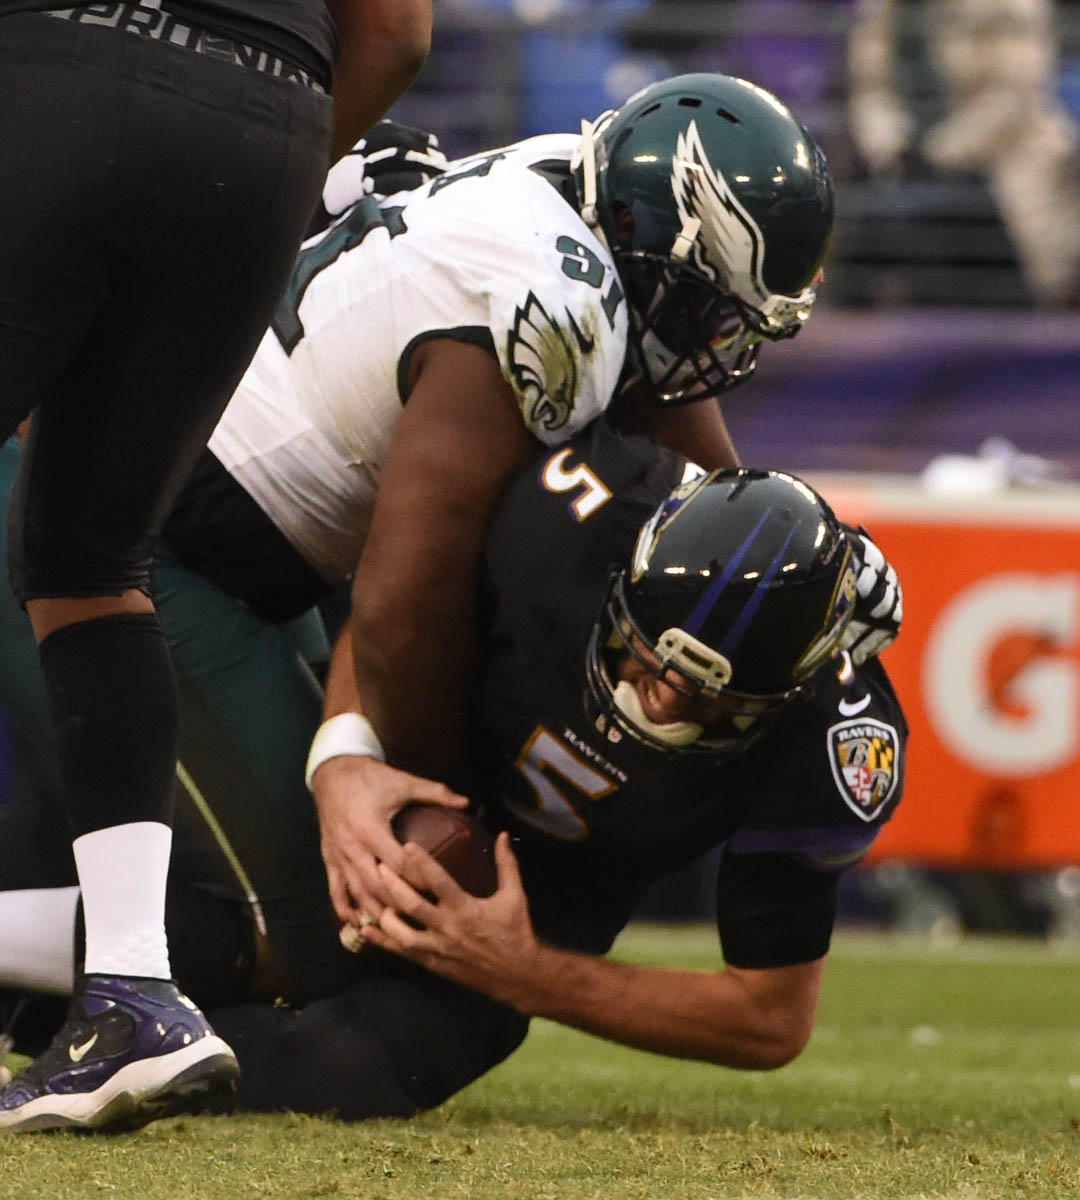 ravens vs eagles - photo #28